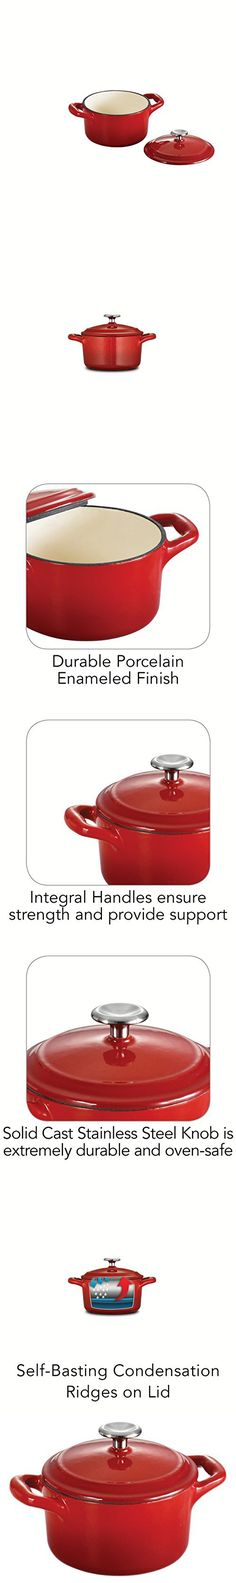 Tramontina Enameled Cast Iron Covered Mini Cocotte, 10.5-Ounce, Gradated Red Cast Iron, It Cast, Dutch Ovens, Porcelain, Enamel, Stainless Steel, Mini, Cover, Red